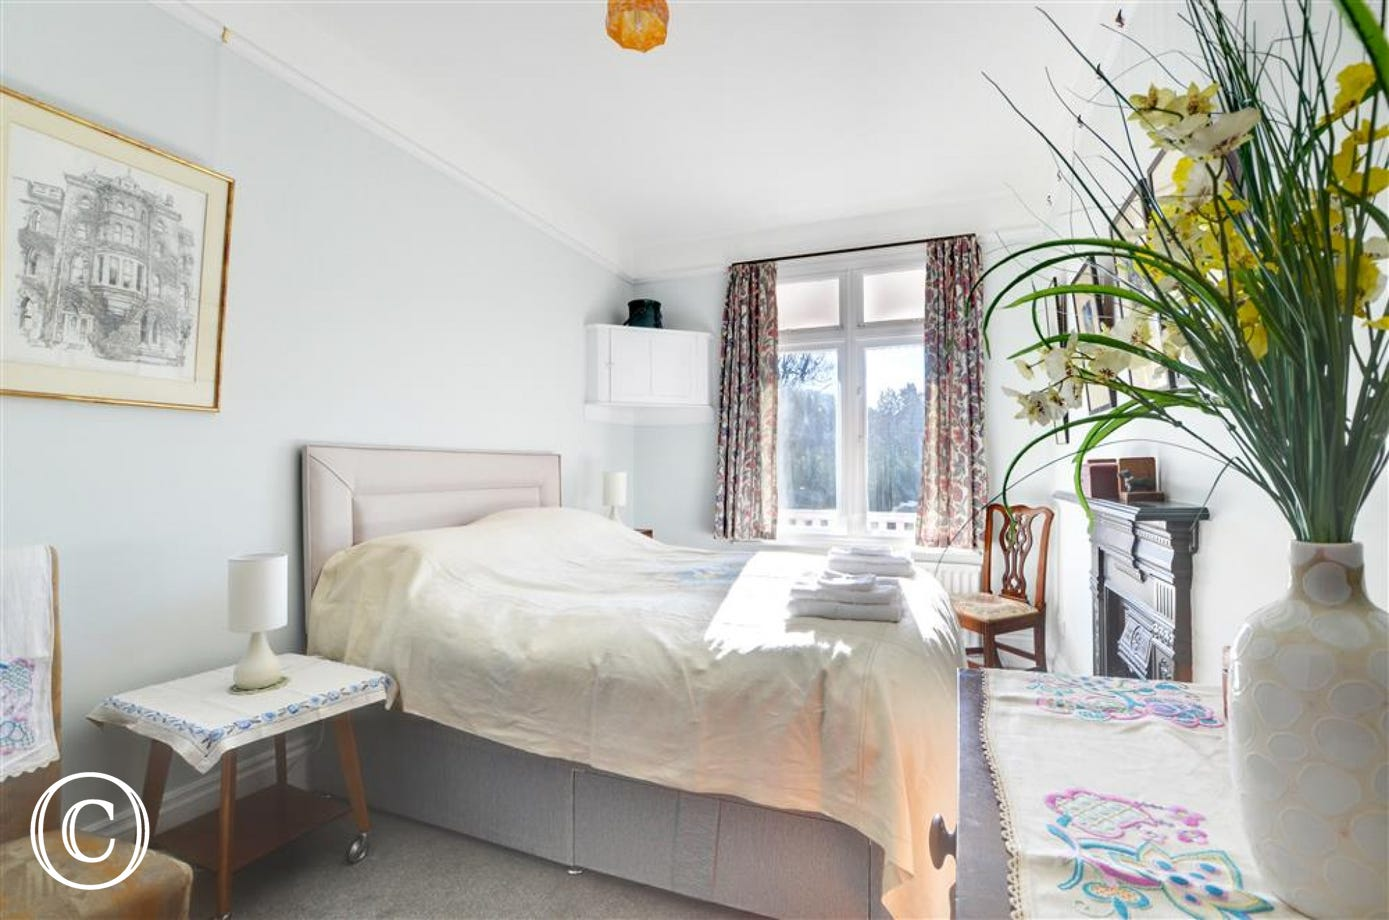 Bright and airy king size bedroom